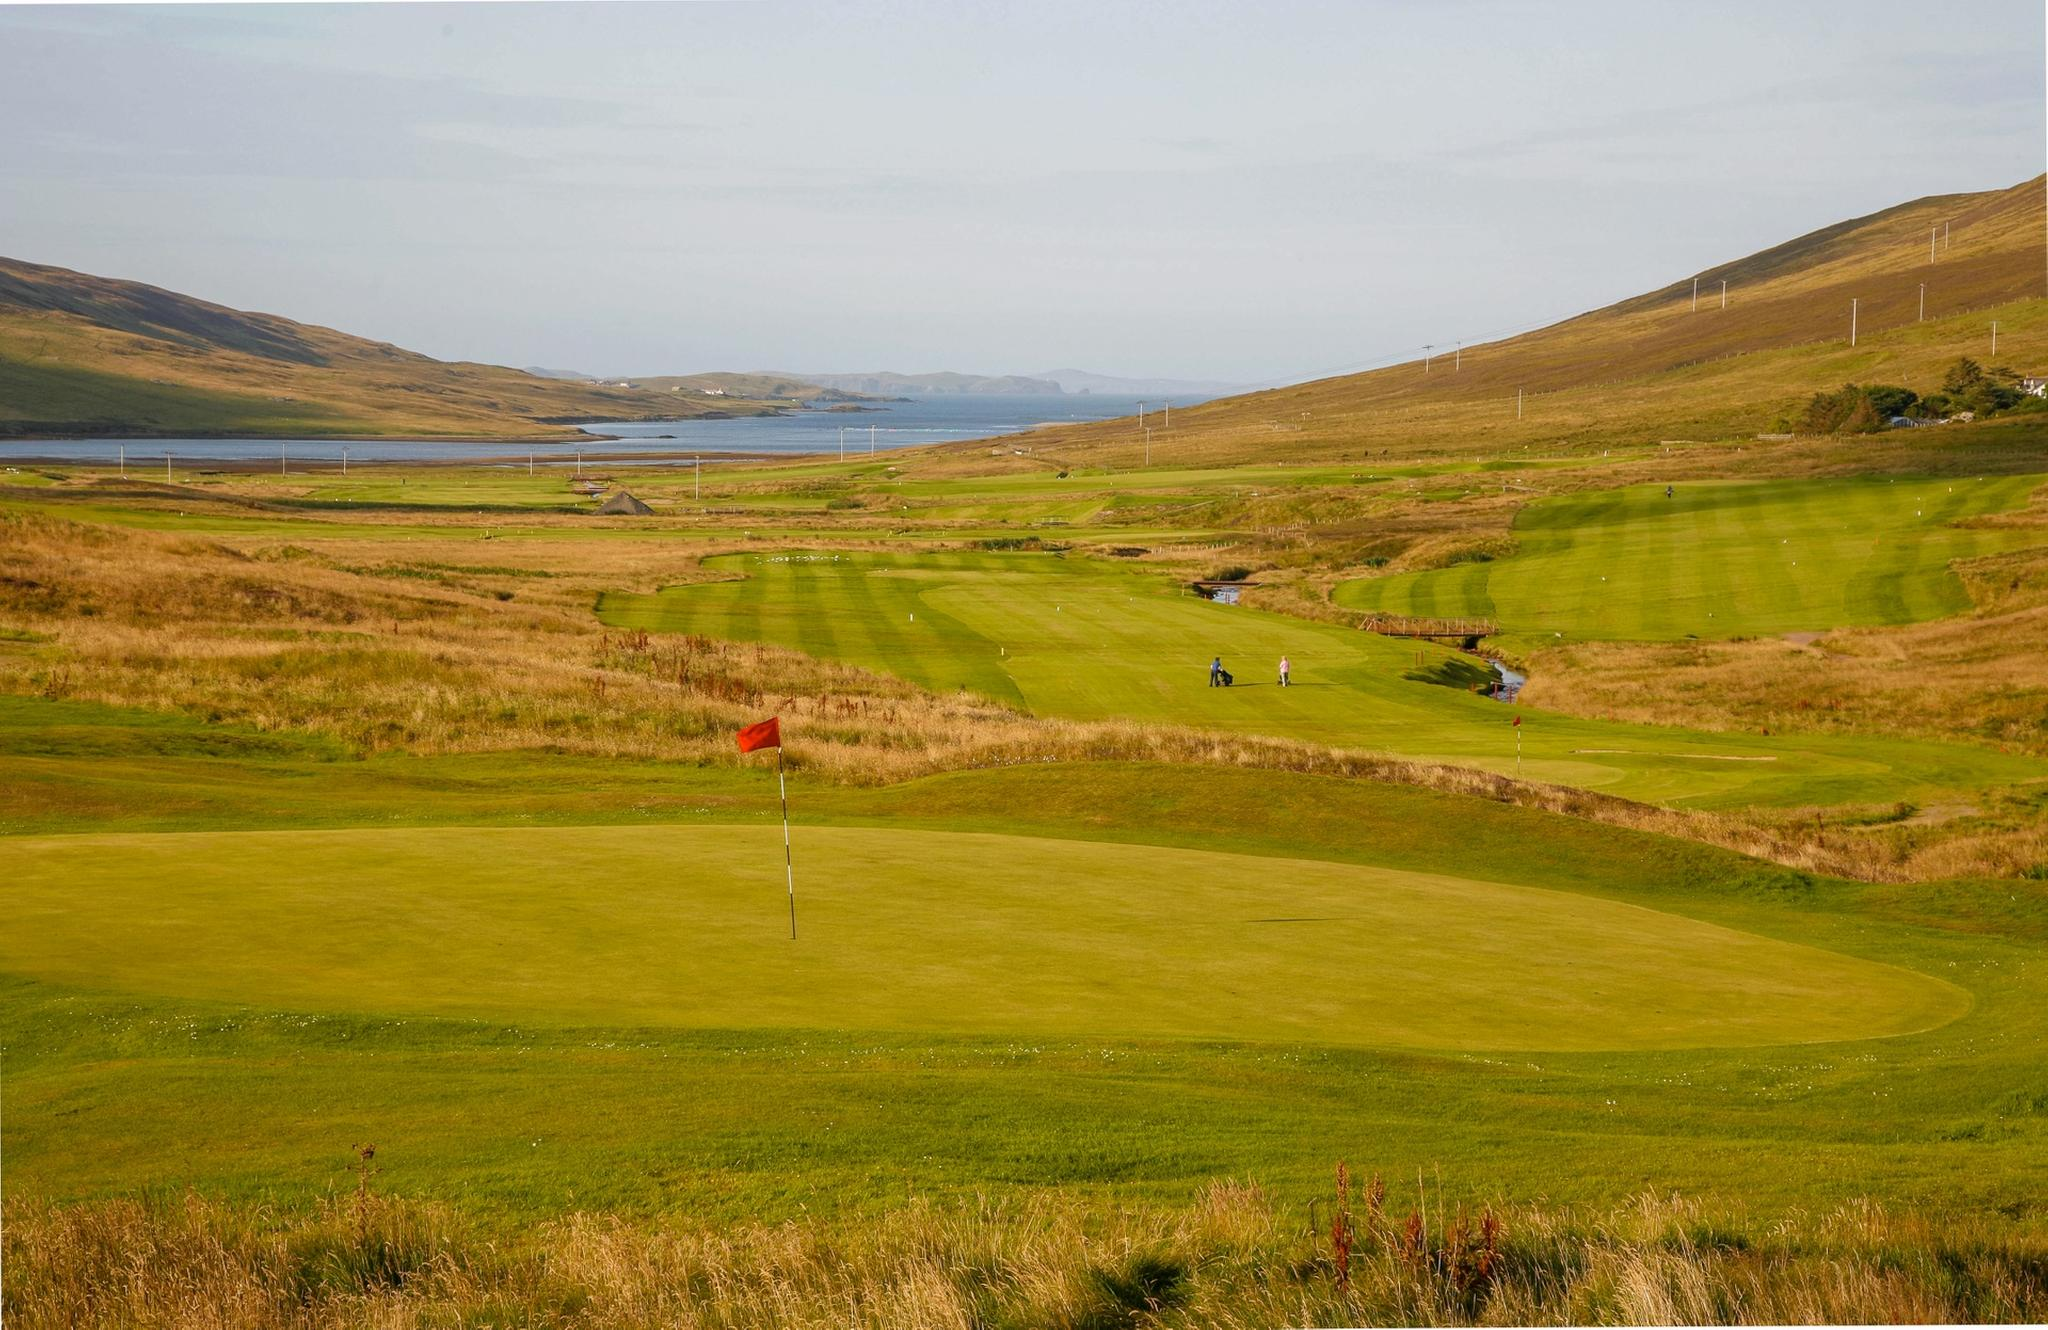 https://cimg.visitscotland.com/cms-images/active/golf/shteland-golf-club?size=lg